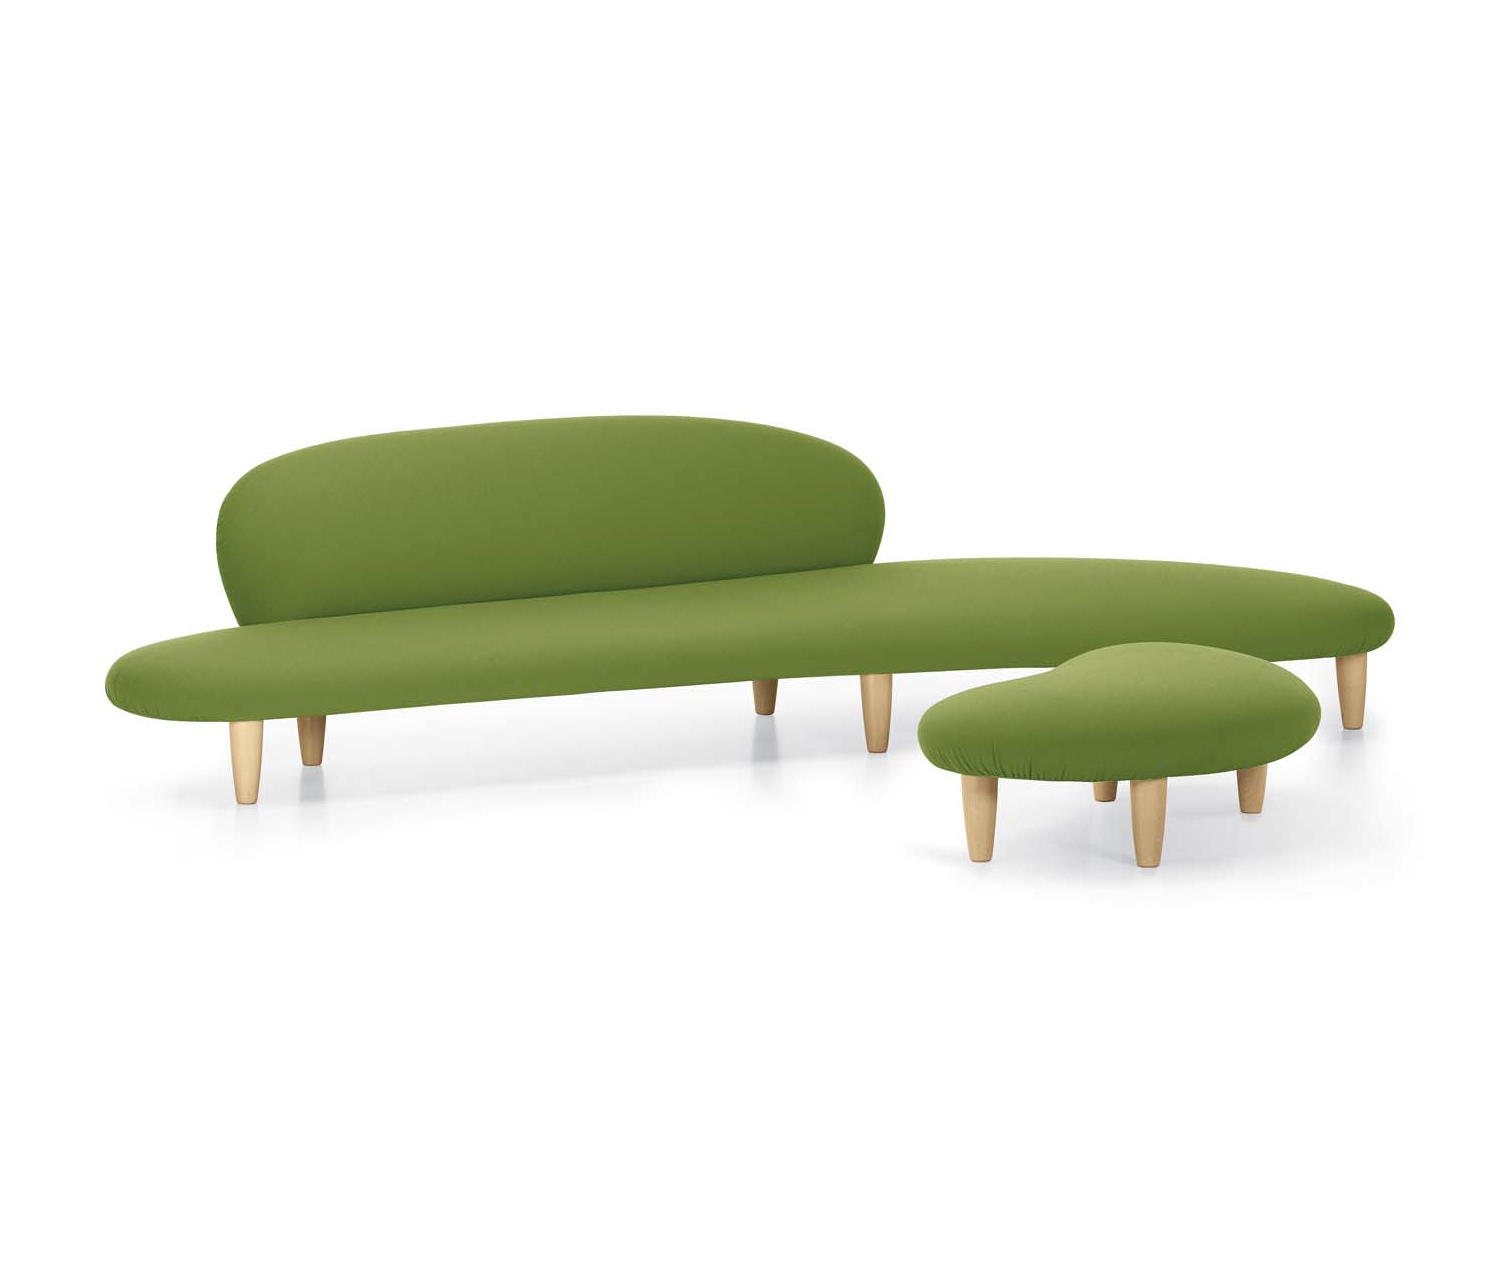 noguchi freeform sofa vitra convertible bed full size and ottoman by architonic